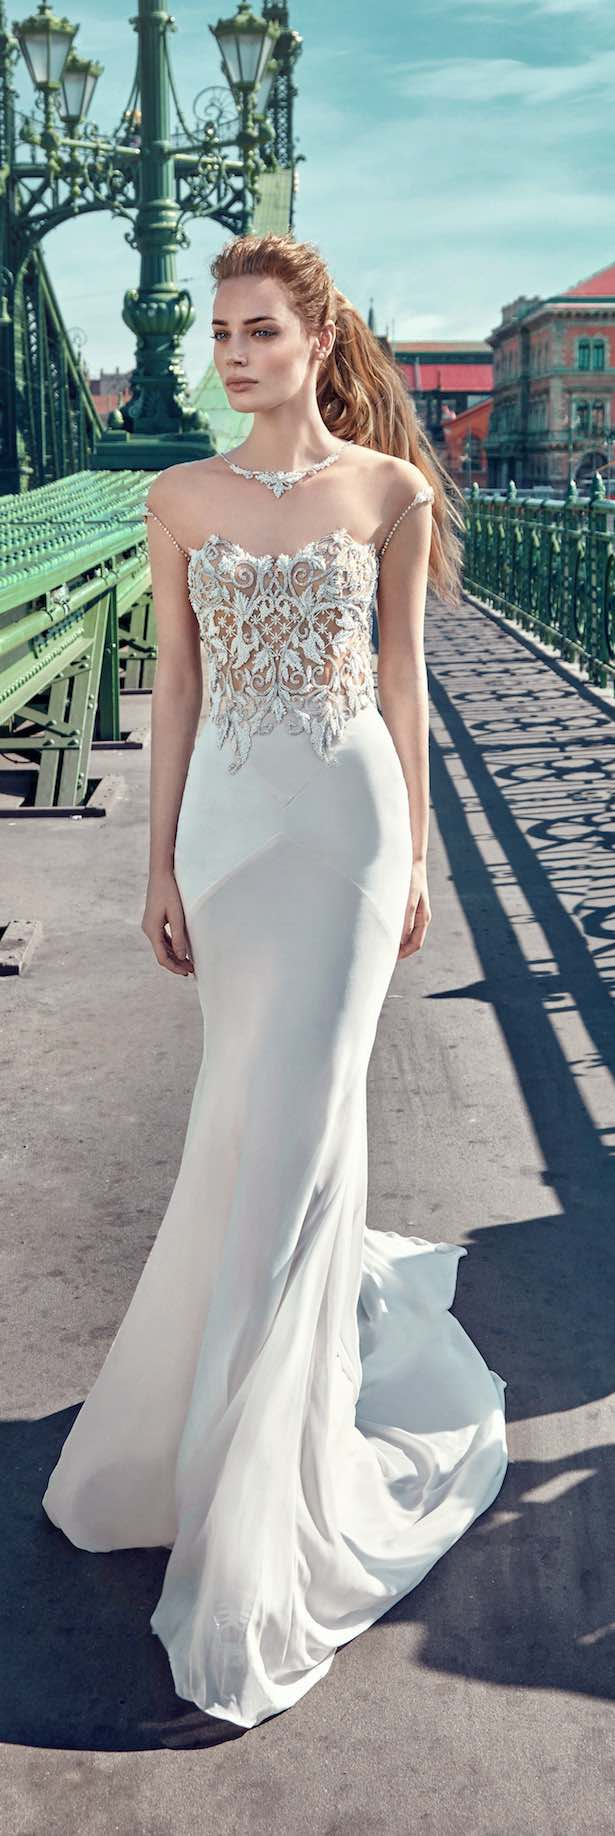 galia lahav wedding dresses galia lahav wedding dresses galia lahav wedding dress 6 nz